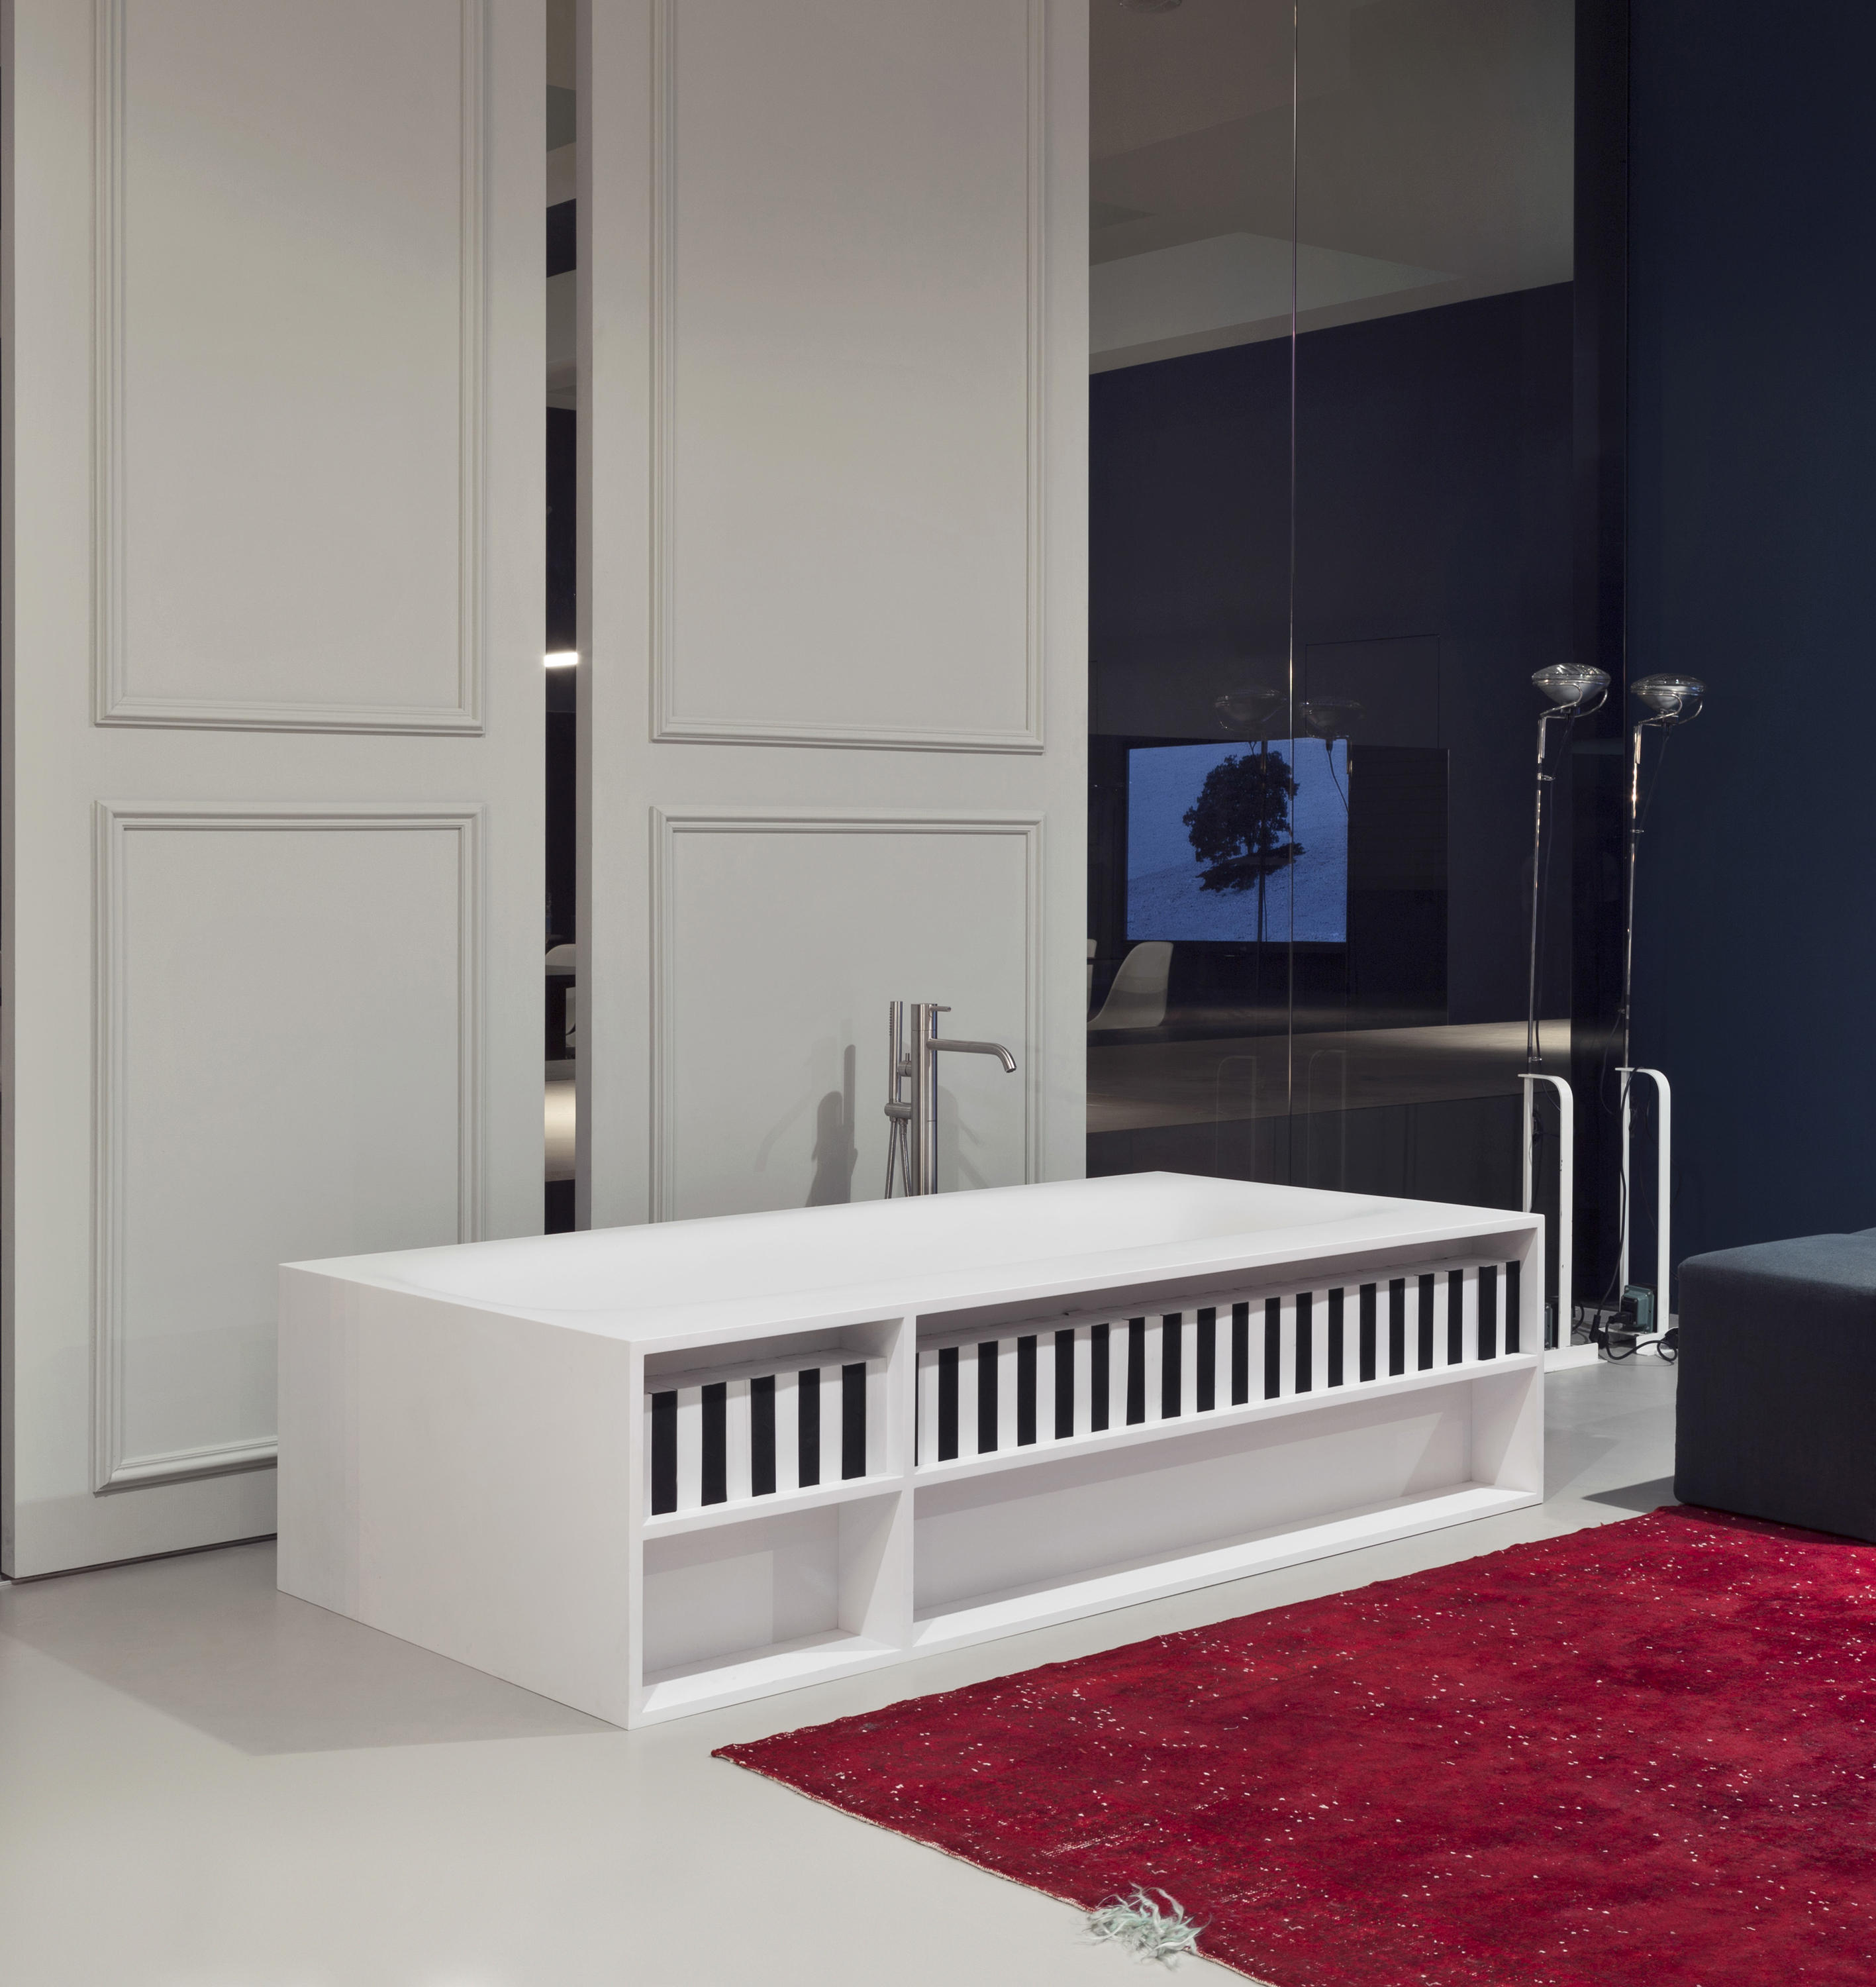 sartoriale freistehend von antoniolupi architonic. Black Bedroom Furniture Sets. Home Design Ideas